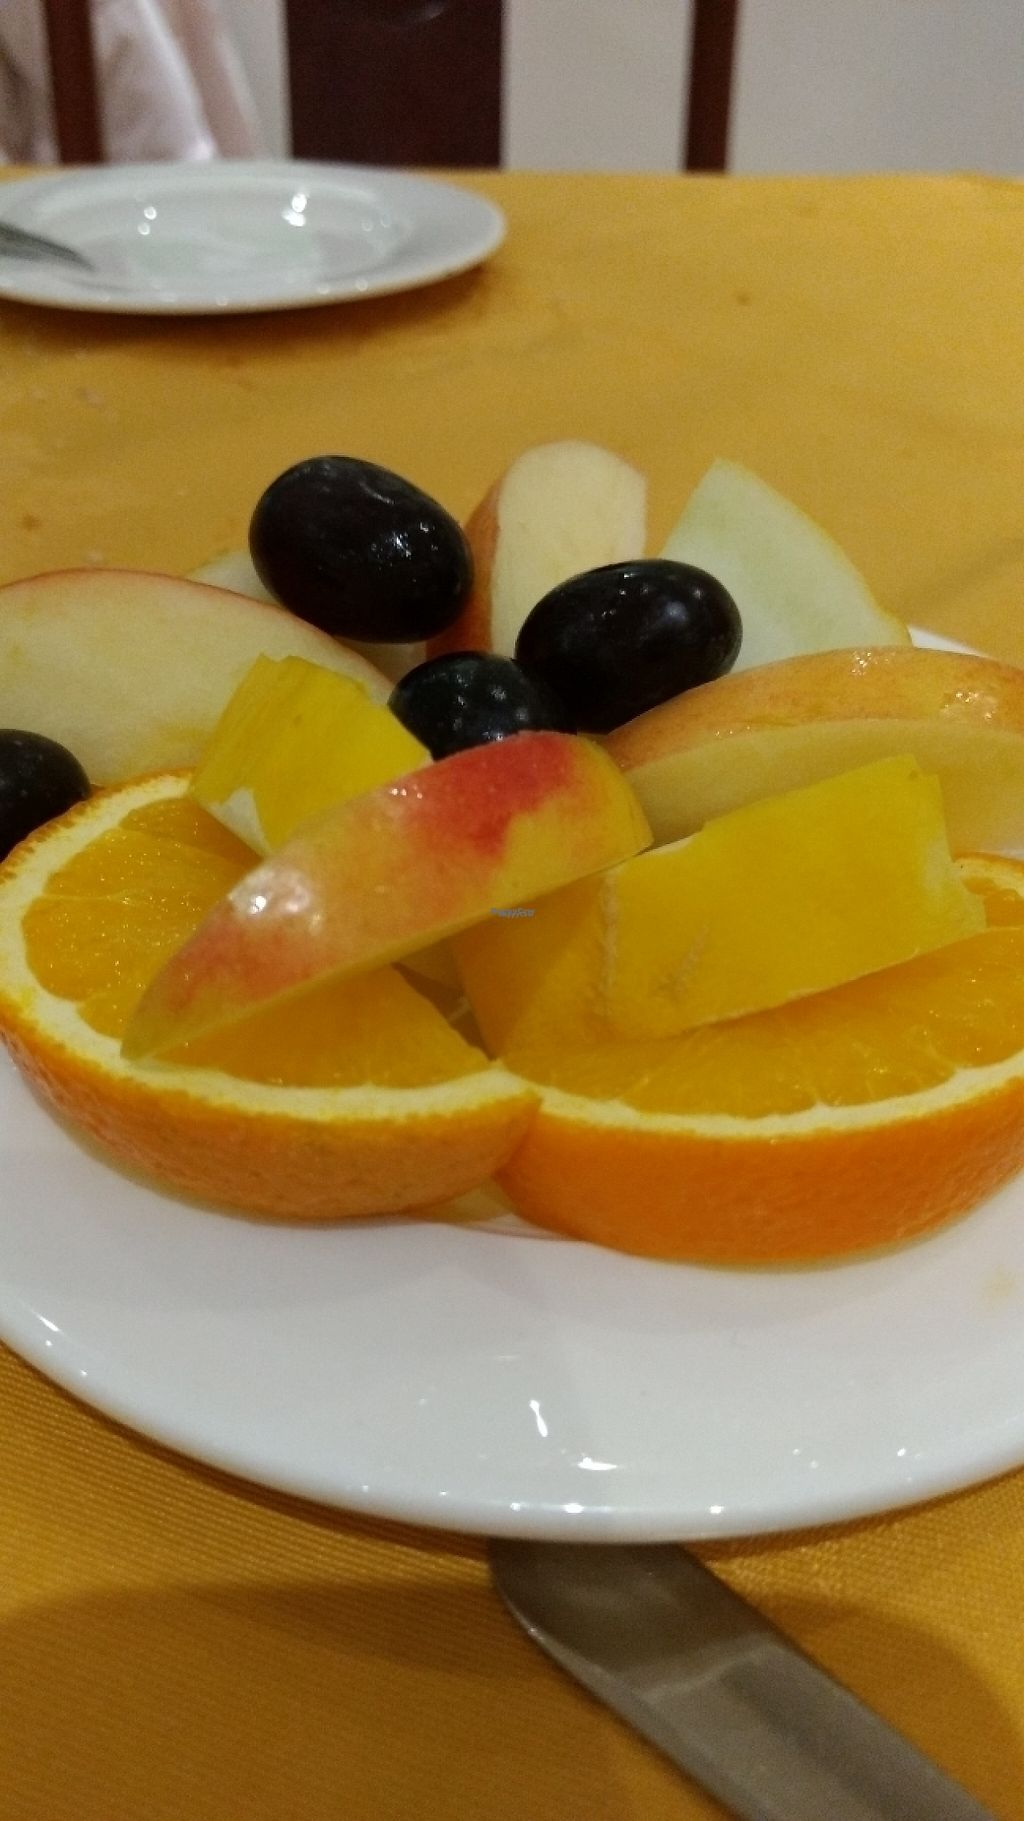 """Photo of Lotus Vegetarian Kitchen  by <a href=""""/members/profile/craigmc"""">craigmc</a> <br/>free fresh fruit with pudding <br/> April 15, 2017  - <a href='/contact/abuse/image/47789/248264'>Report</a>"""